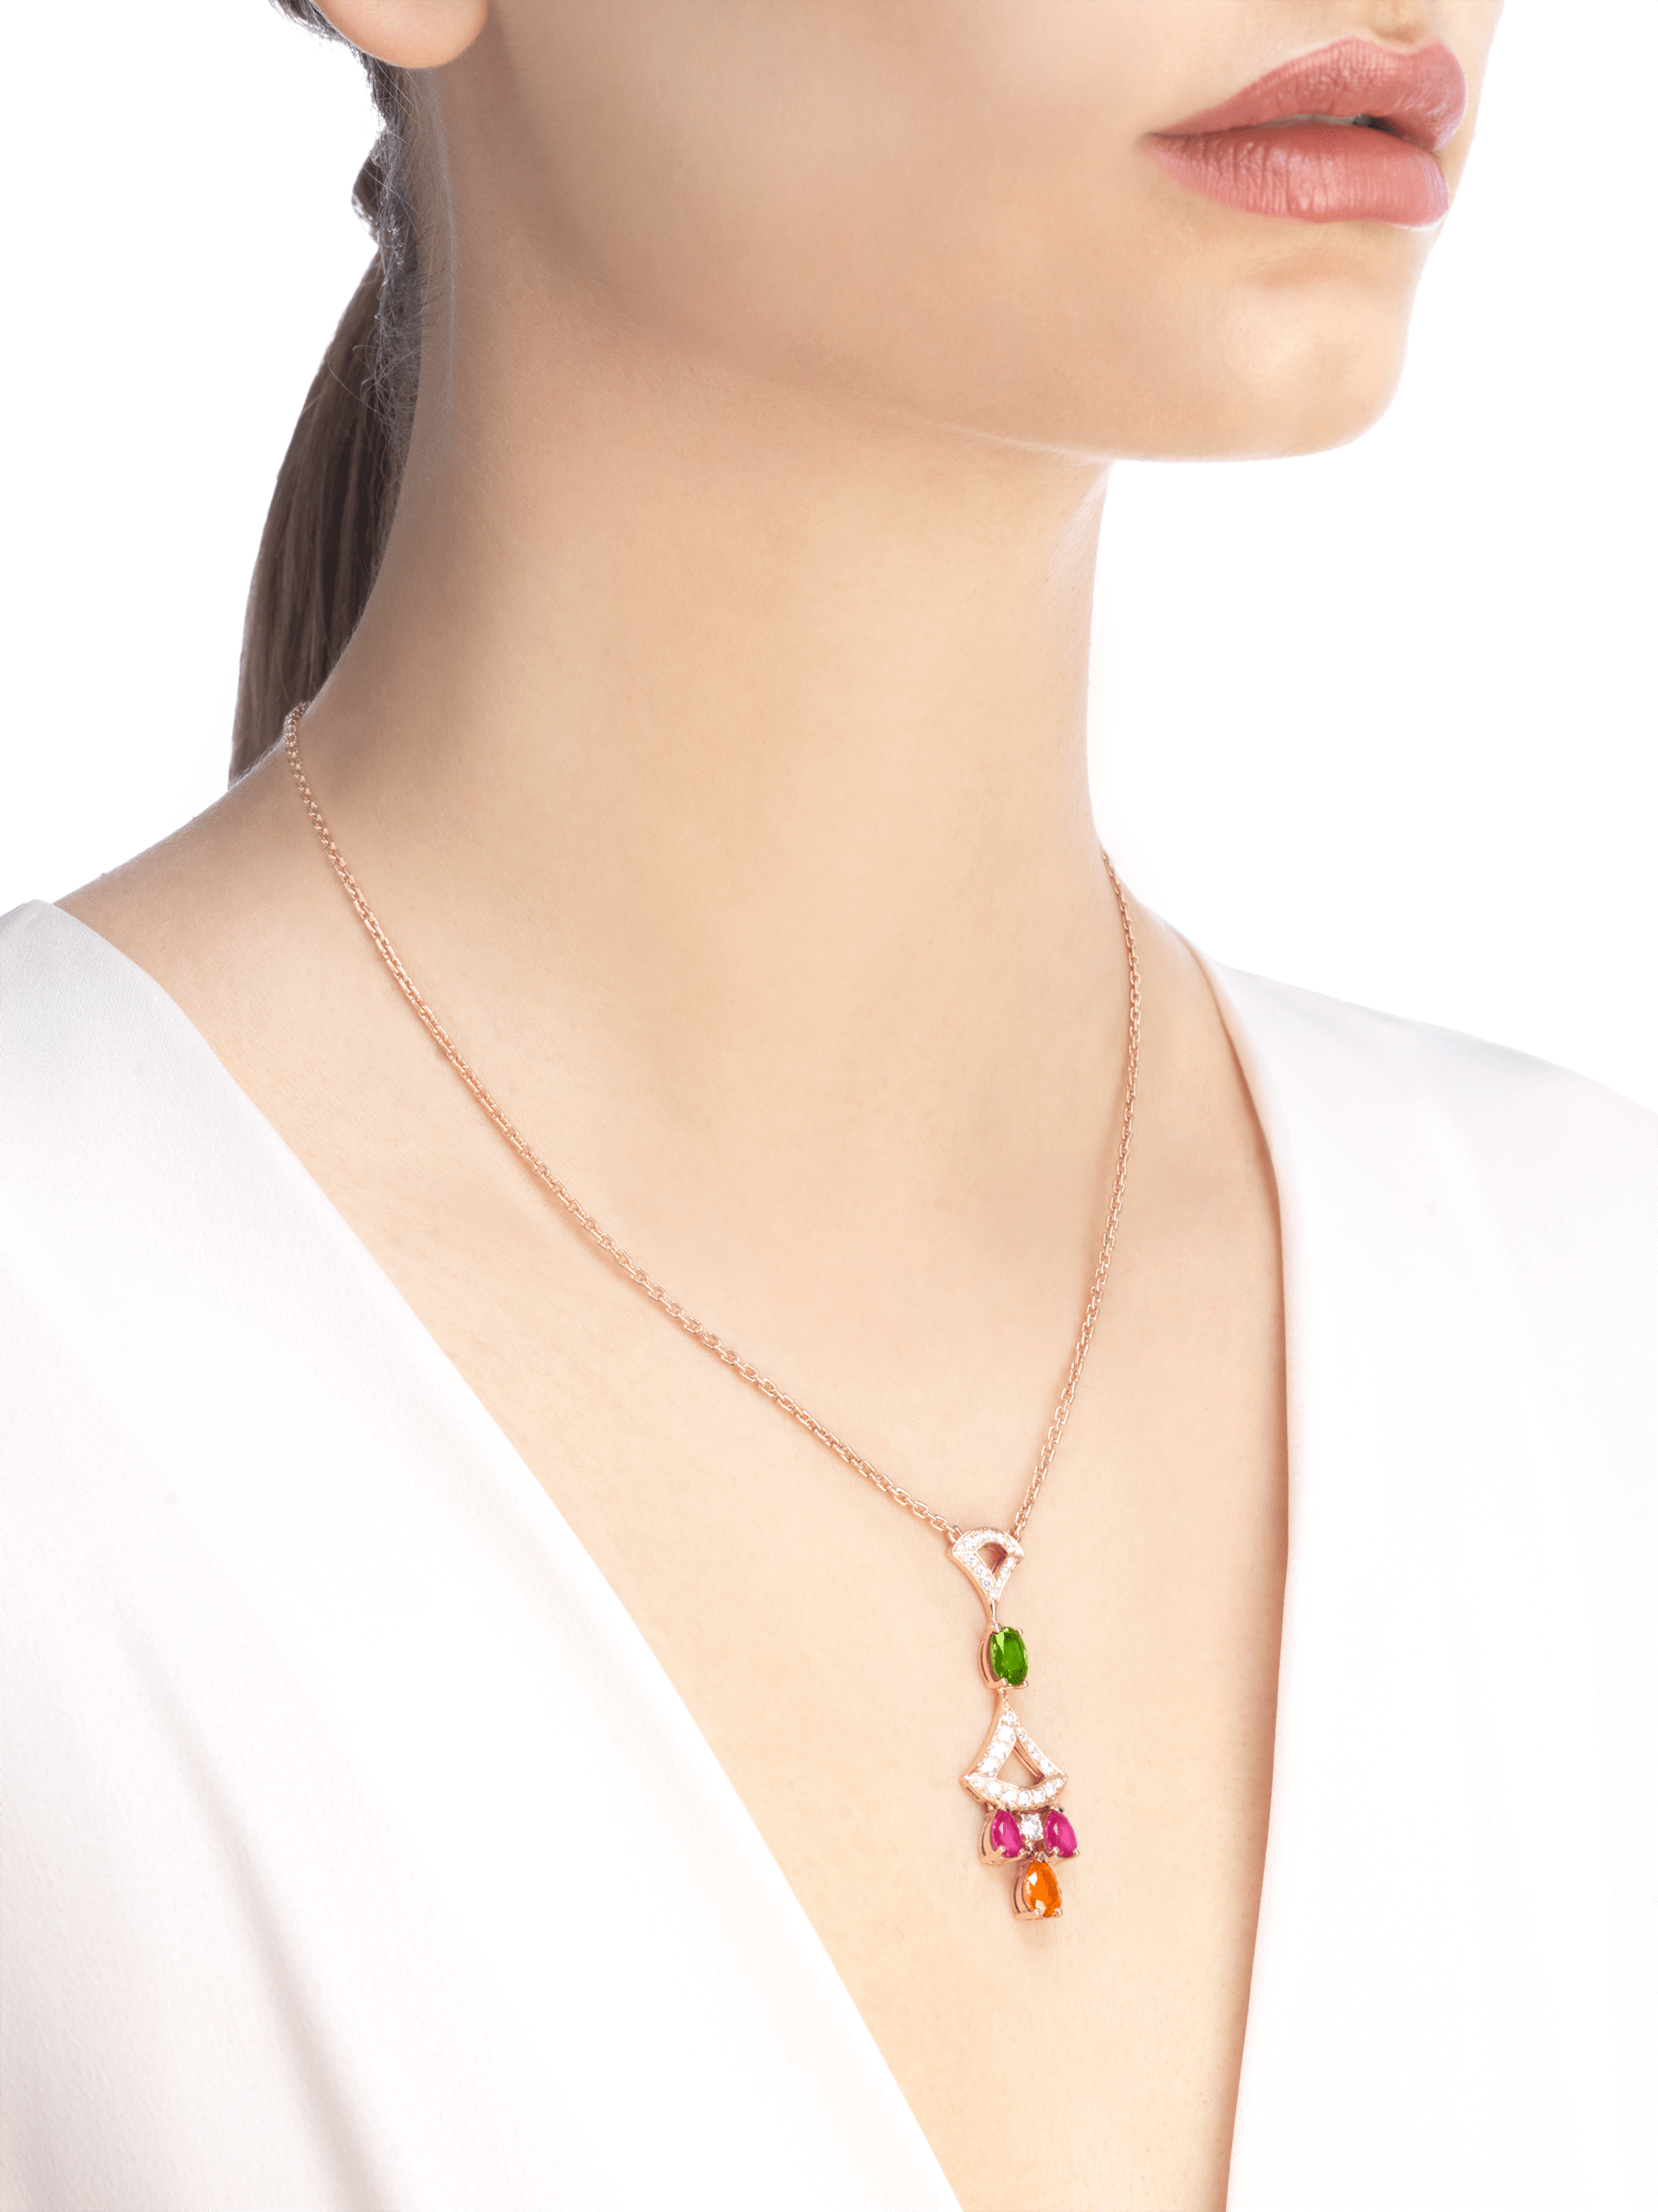 DIVAS' DREAM 18 kt rose gold necklace set with coloured gemstones, a brlliant-cut diamond and pavé diamonds 355613 image 4